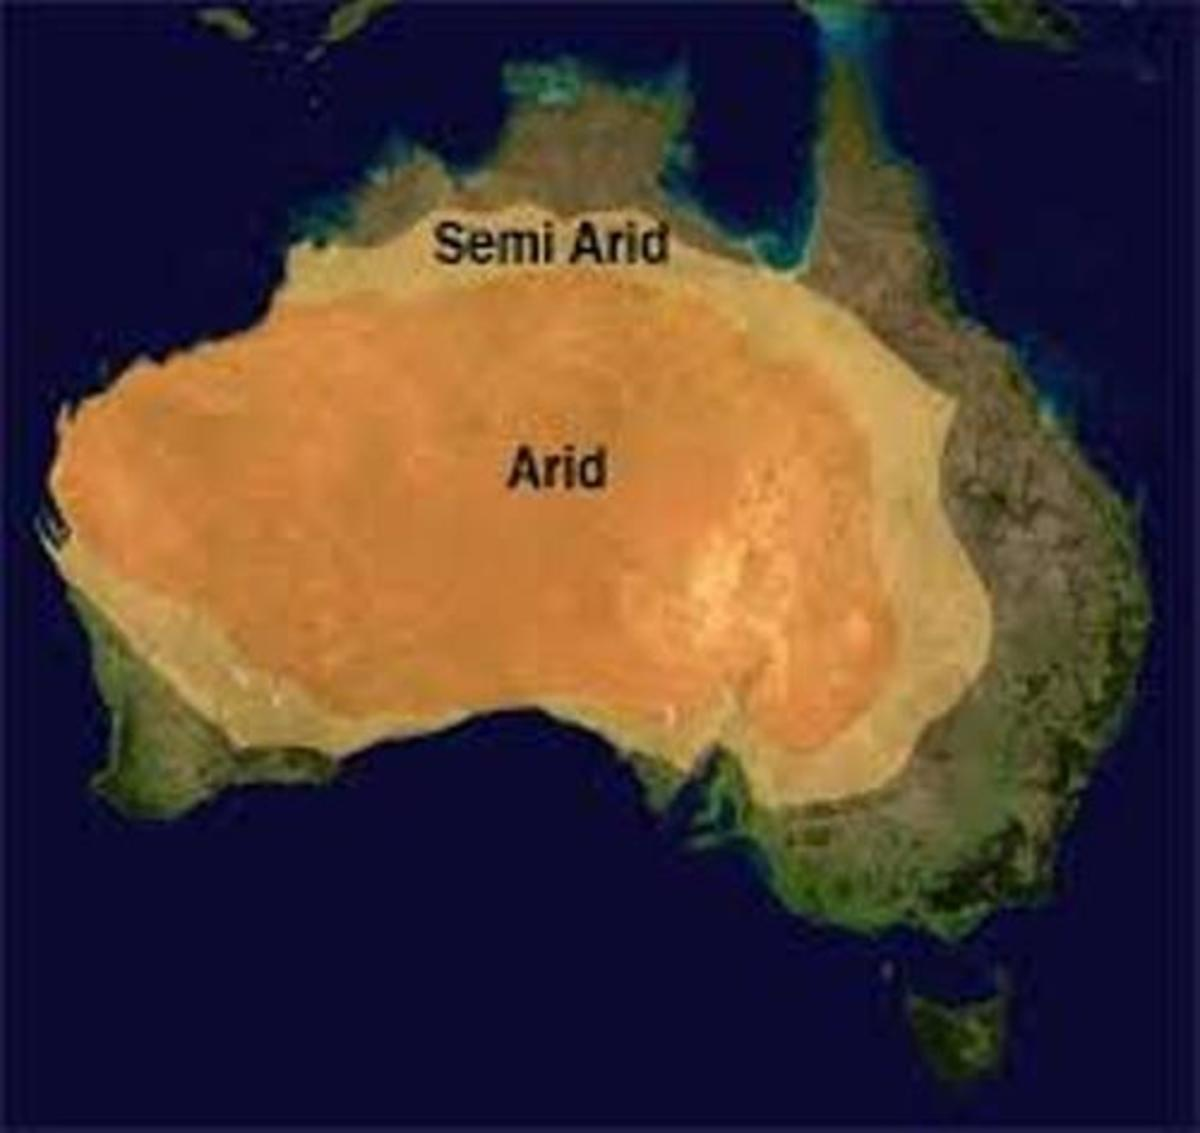 In Australia we have also some good land, but this year because it is hot and dry, there  are many fires burning, so, this is another problem that needs to be solved. We don't want this good land to become arid or desert.